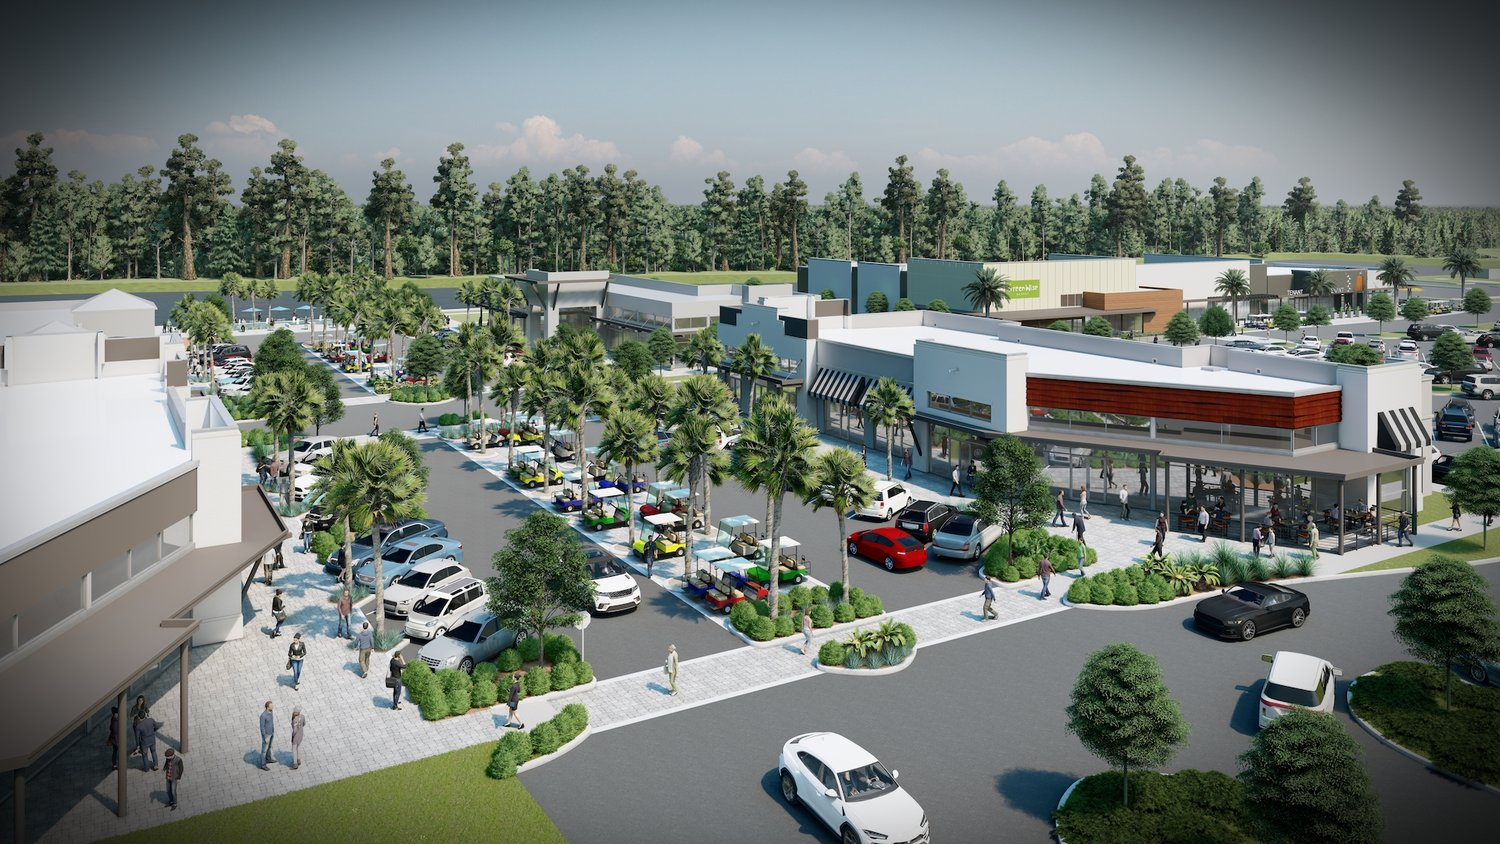 A rendering shows the plans for the new Nocatee Town Center expansion that will be anchored by a GreenWise Market.